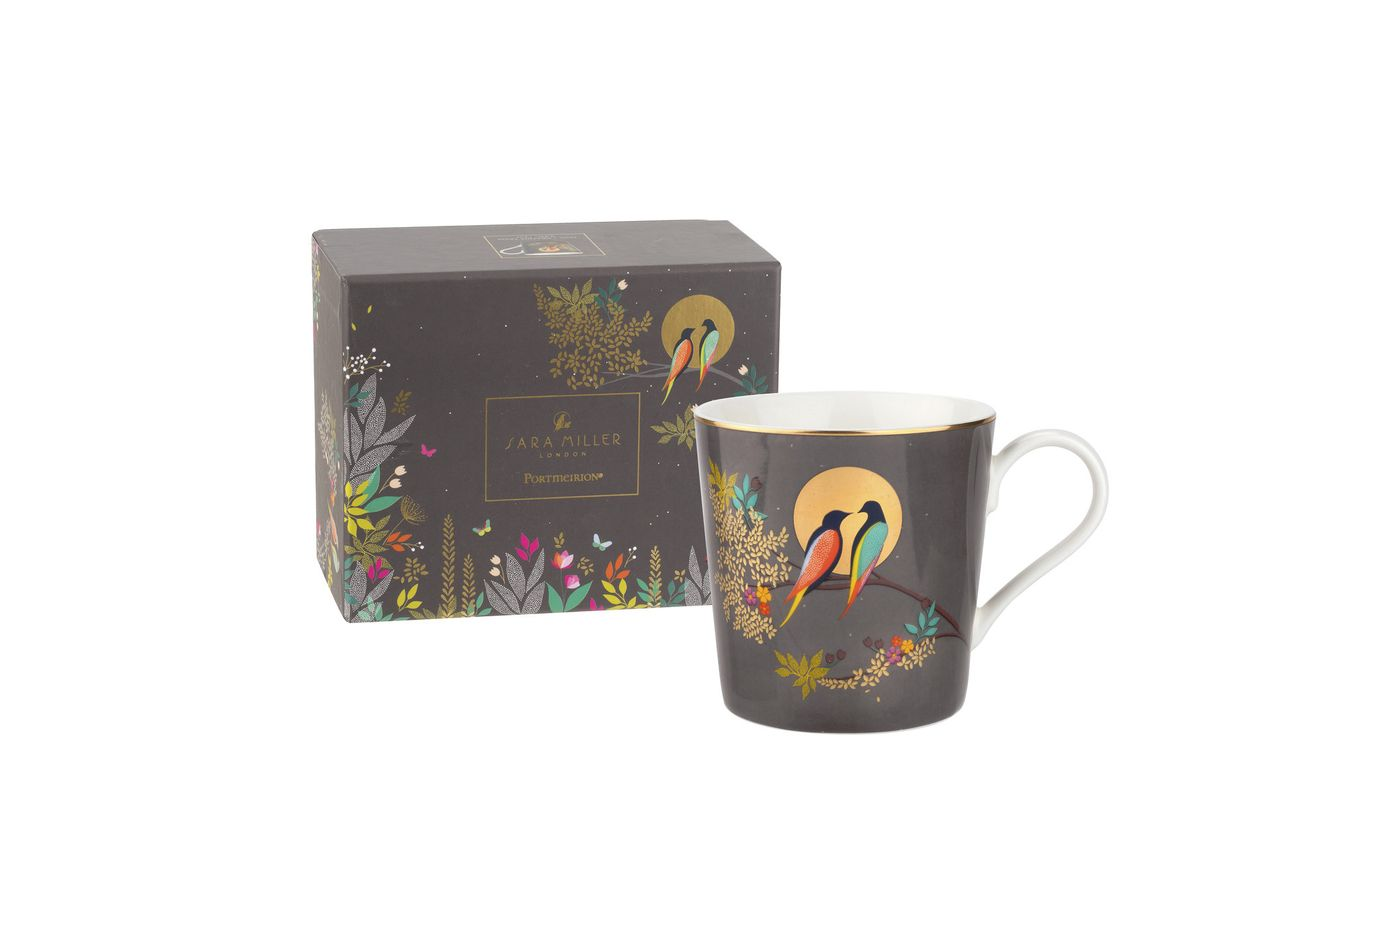 Sara Miller London for Portmeirion Chelsea Collection Mug Dark Grey 0.34l thumb 2